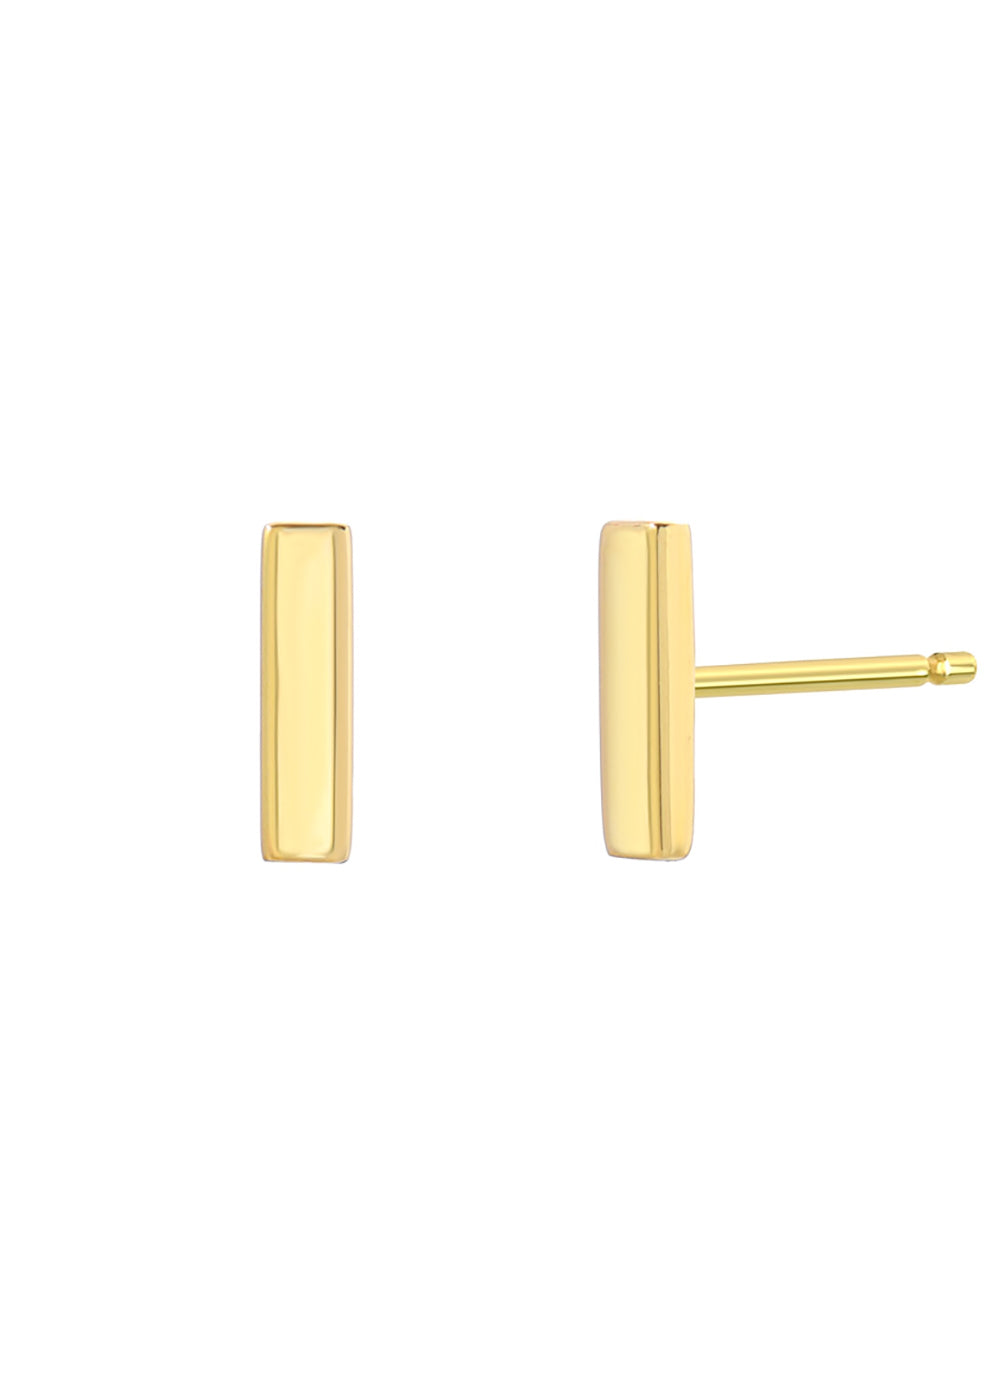 Zoe 14K Bar Earring in Yellow Gold